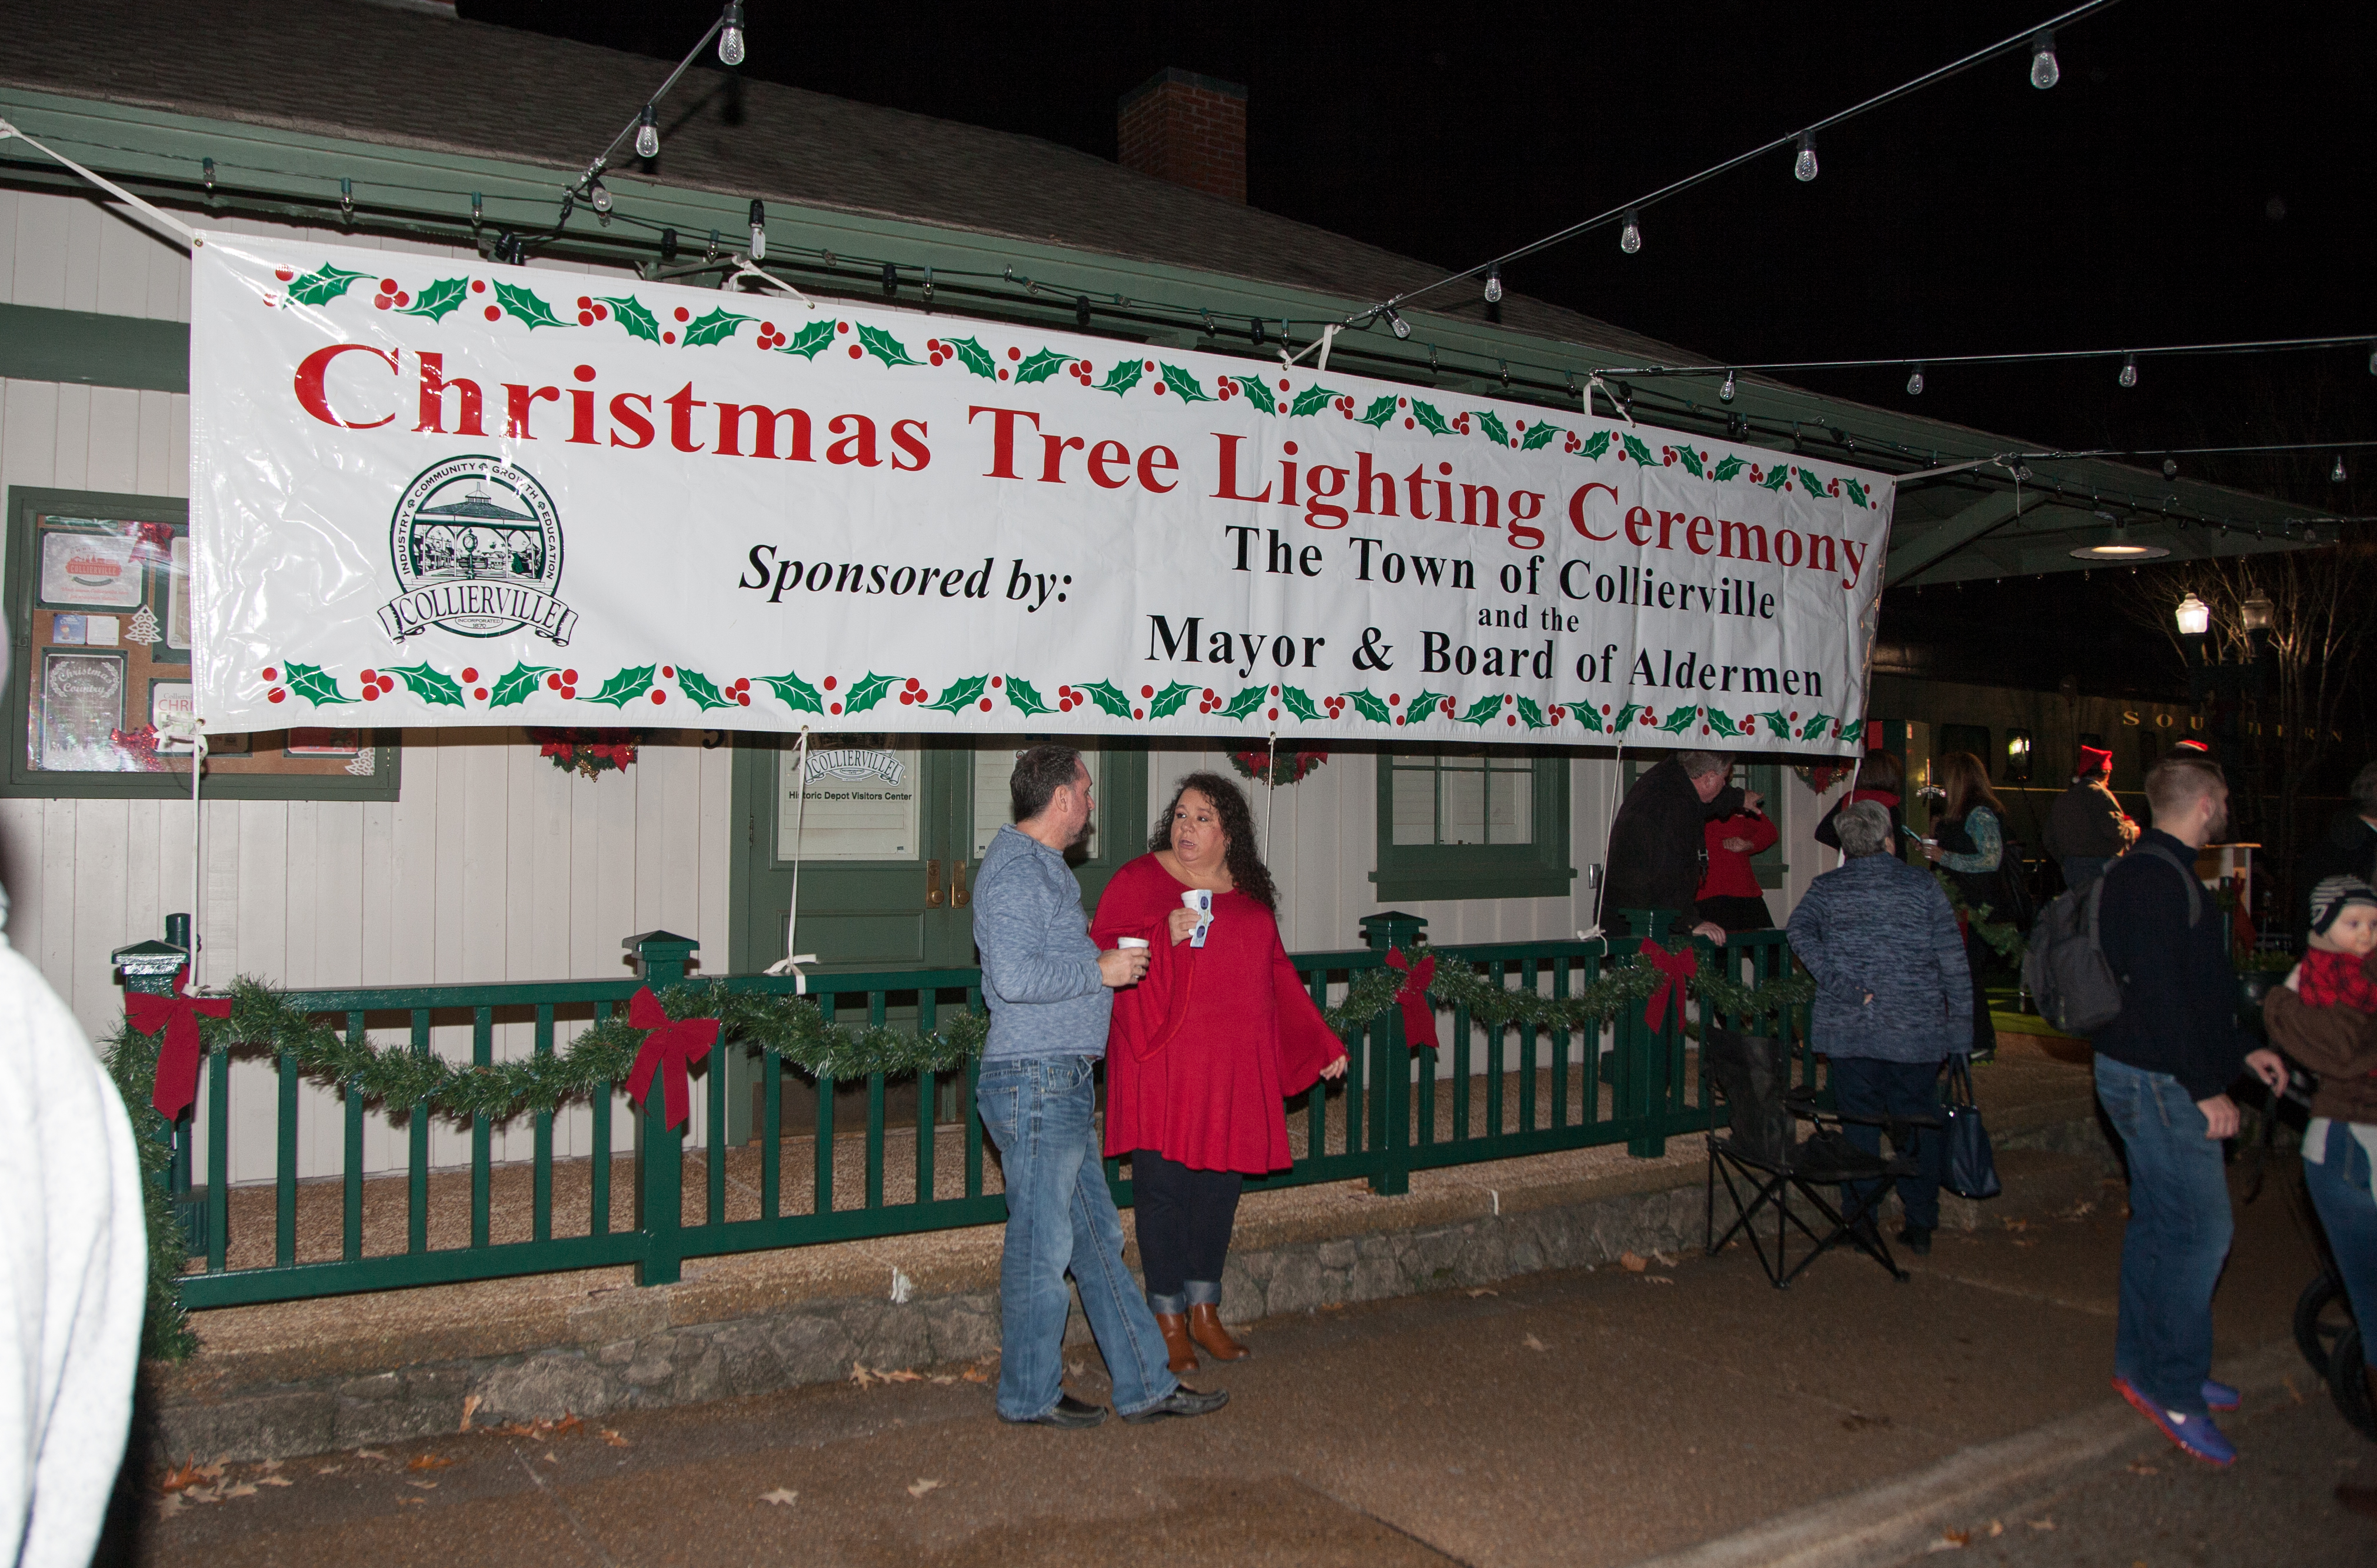 The annual Christmas Tree Lighting on the Collierville Town Square is the perfect way to kick-off Christmas! Hot chocolate was served local childrenu0027s ... & Collierville Christmas Tree Lighting u2013 Tour Collierville